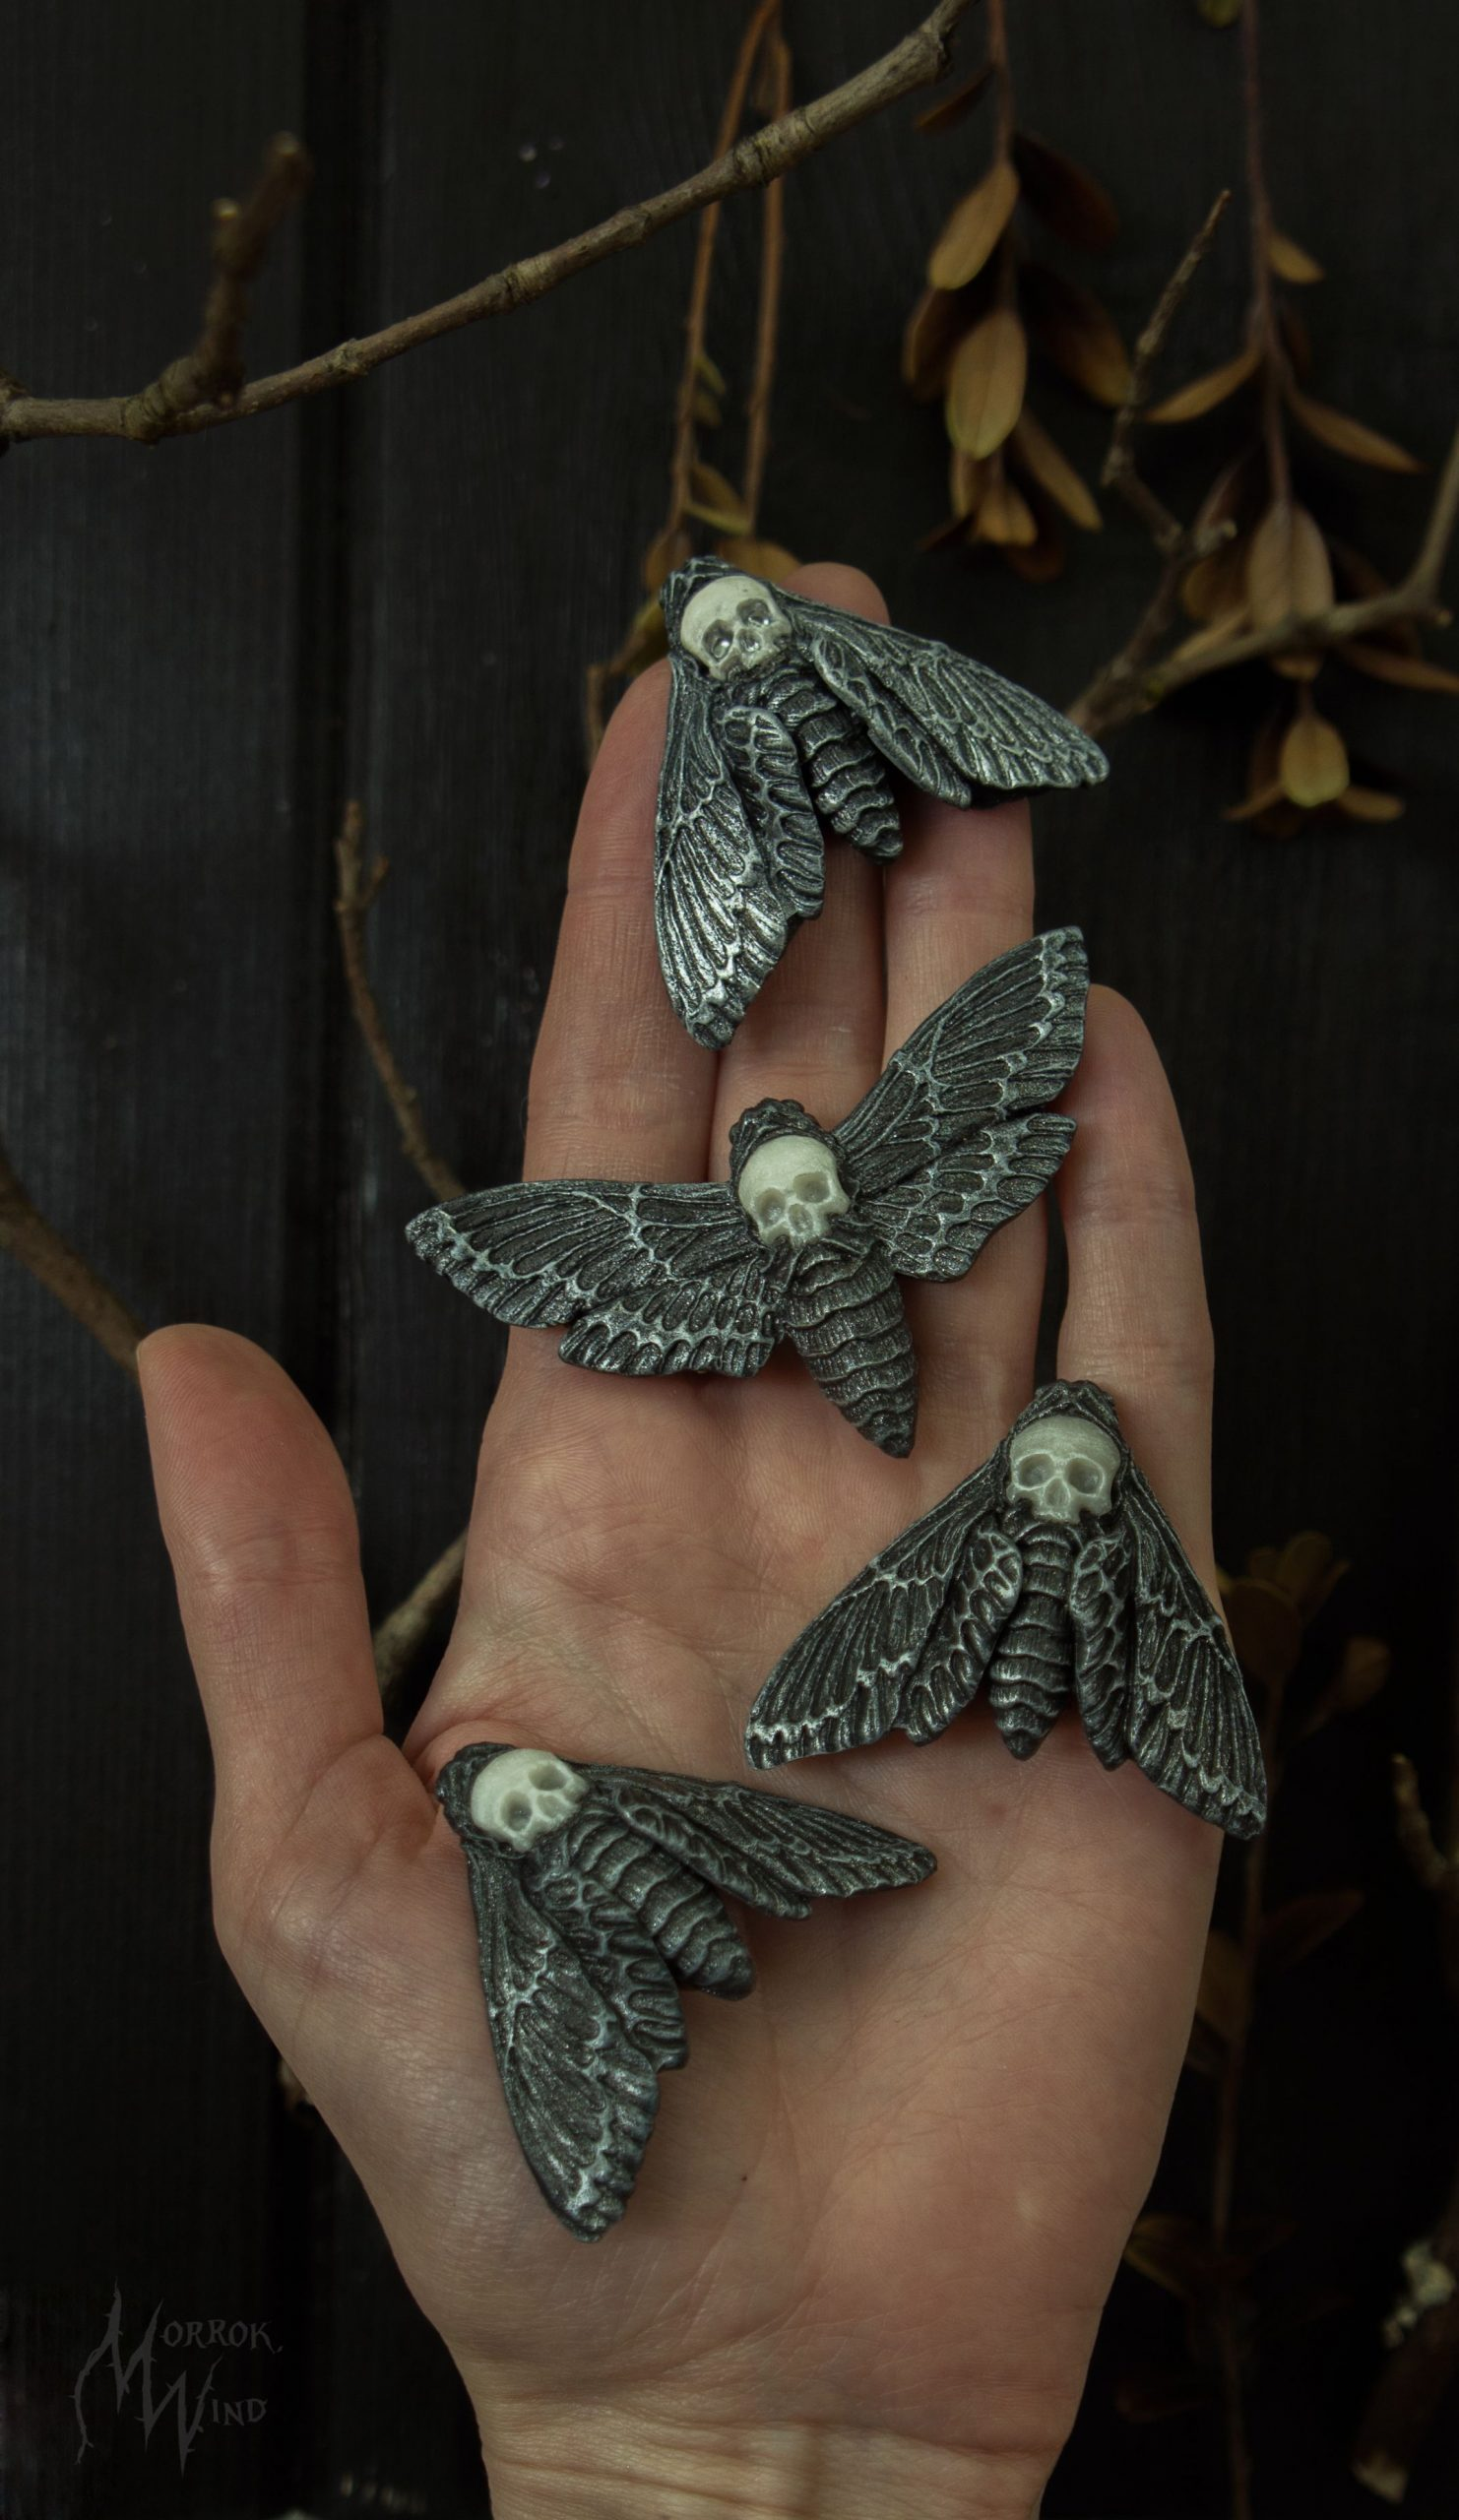 halloween jewelry Witchy Death's head Hawkmoth Acherontia Witch's jewelry brooch Gothic skull moth scull butterfly insect dark boho fantasy